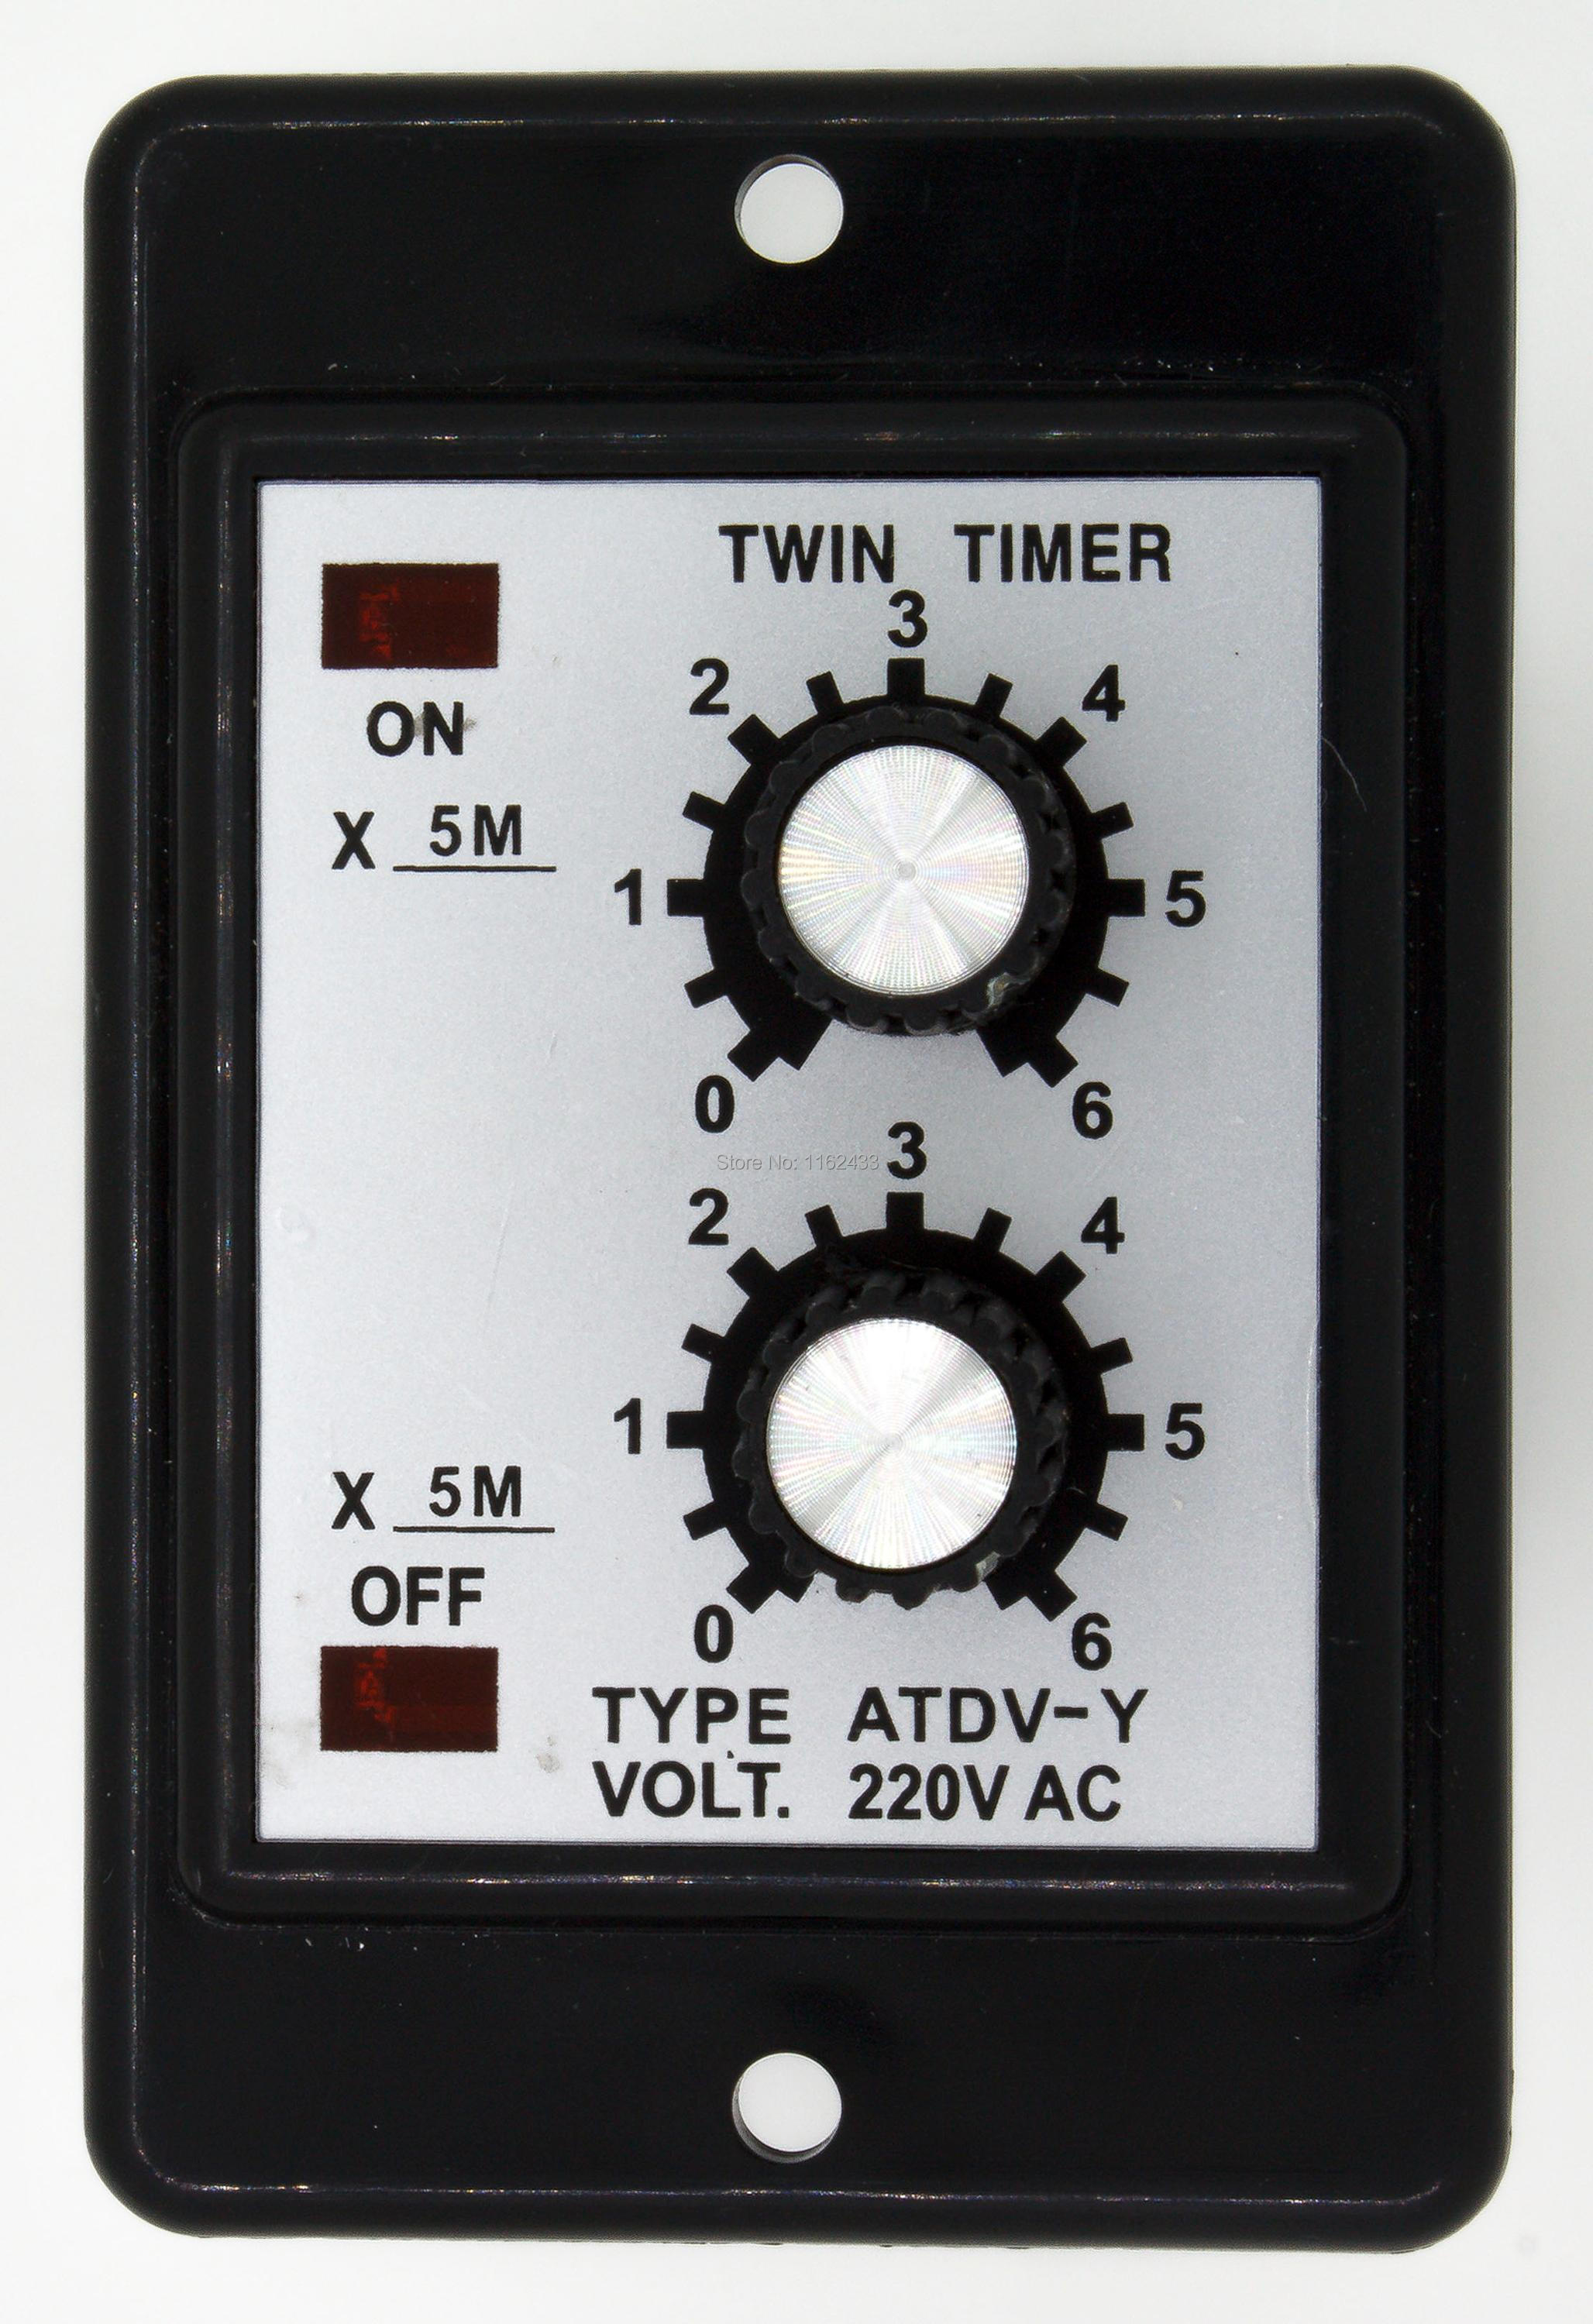 medium resolution of atdv y ac 220v repeat cycle spdt time relay atdv series 220vac twin pinrelaydiagram atdvy 30s 220v ac twin timer relay view twin timer source aexit asy 2d